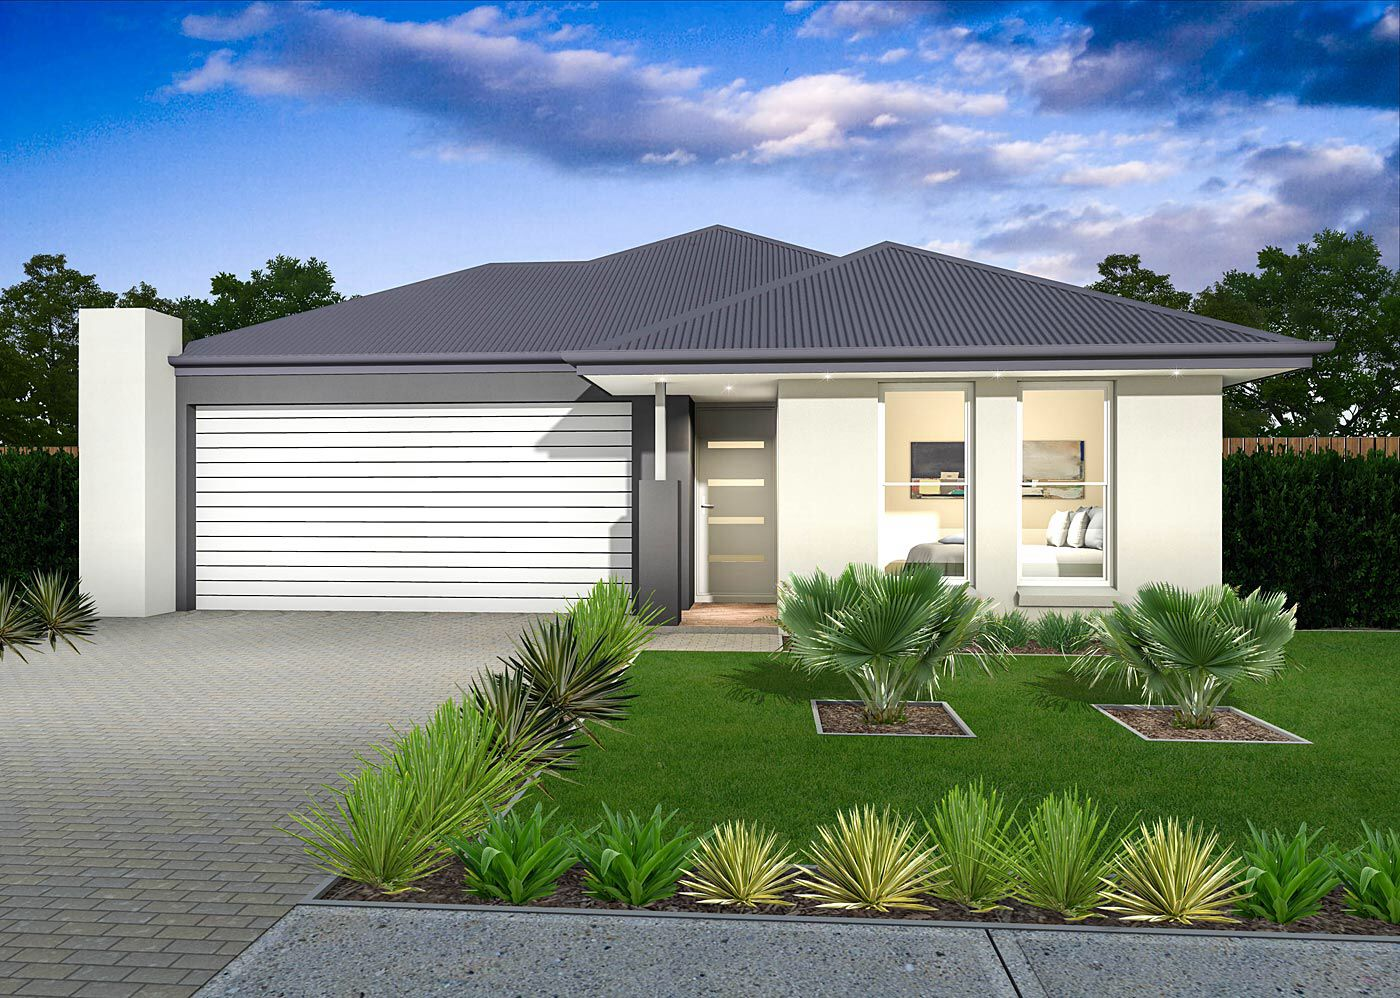 The evandale a stylish new home design for narrow lots the the evandale a stylish new home design for narrow lots the evandale is from the blueprint homes essentials range pinterest ranges modern contempo malvernweather Choice Image